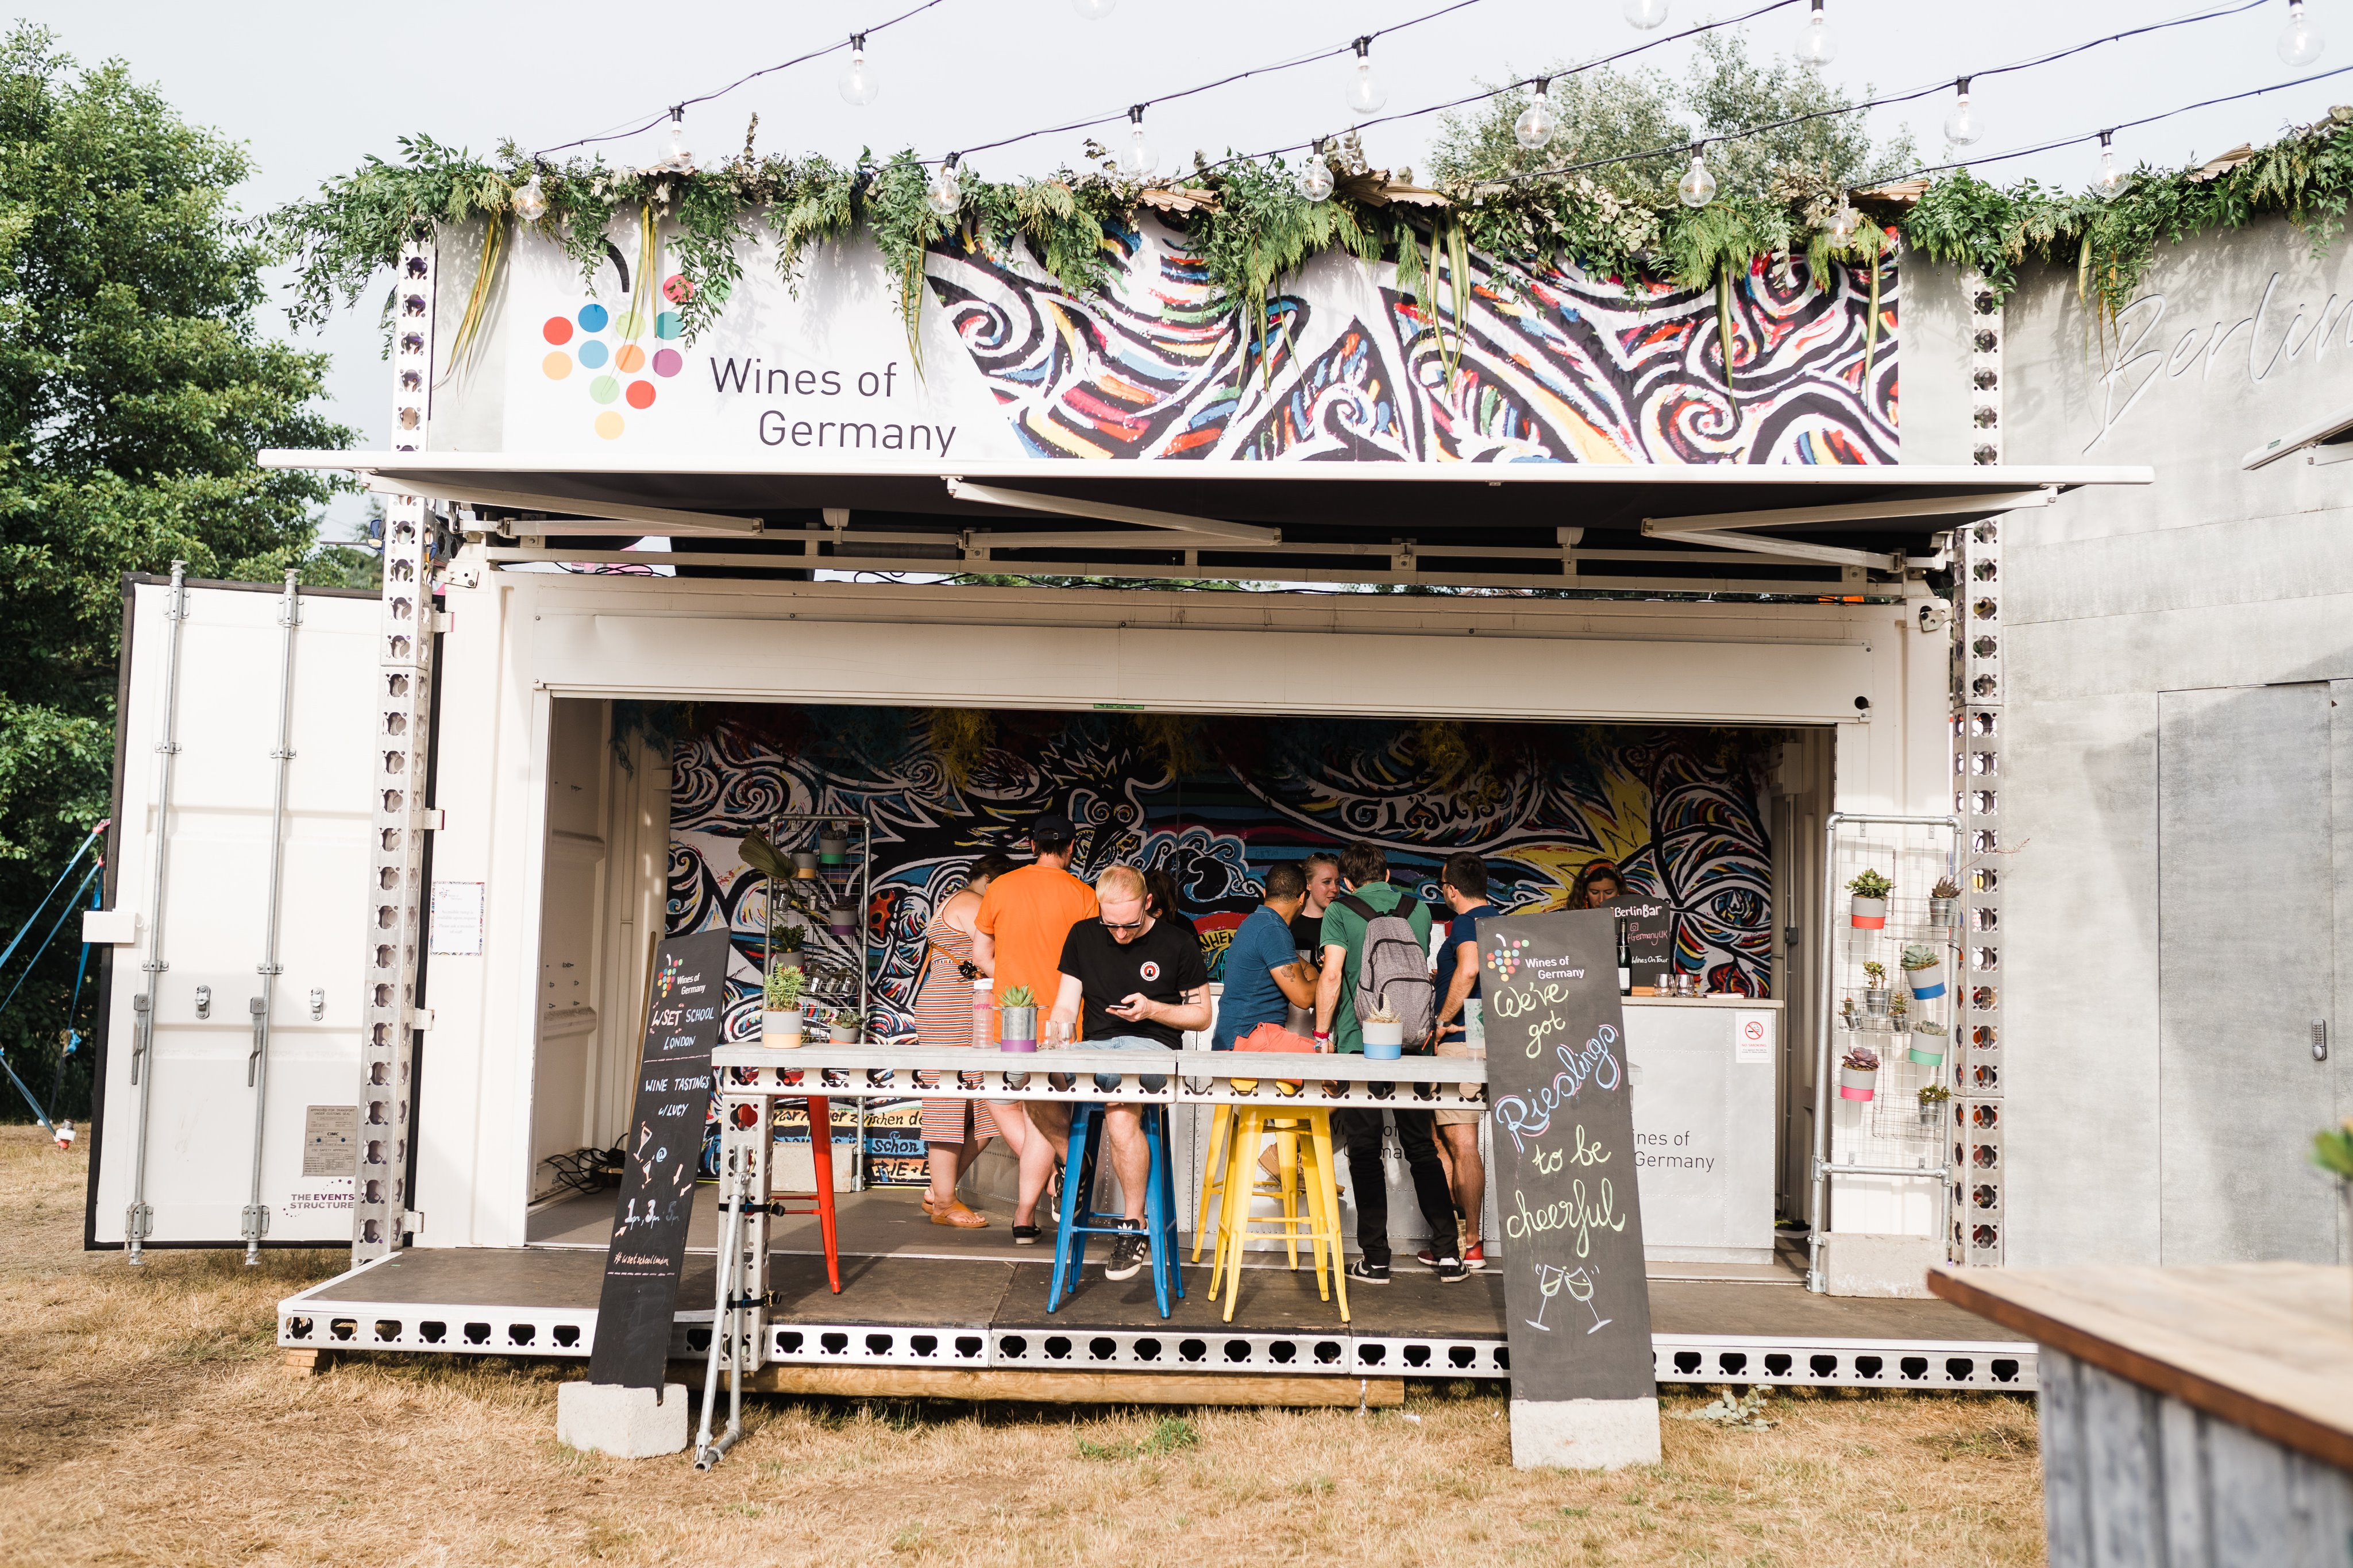 Germany of Wines pop-up shipping container bar at Latitude Festival